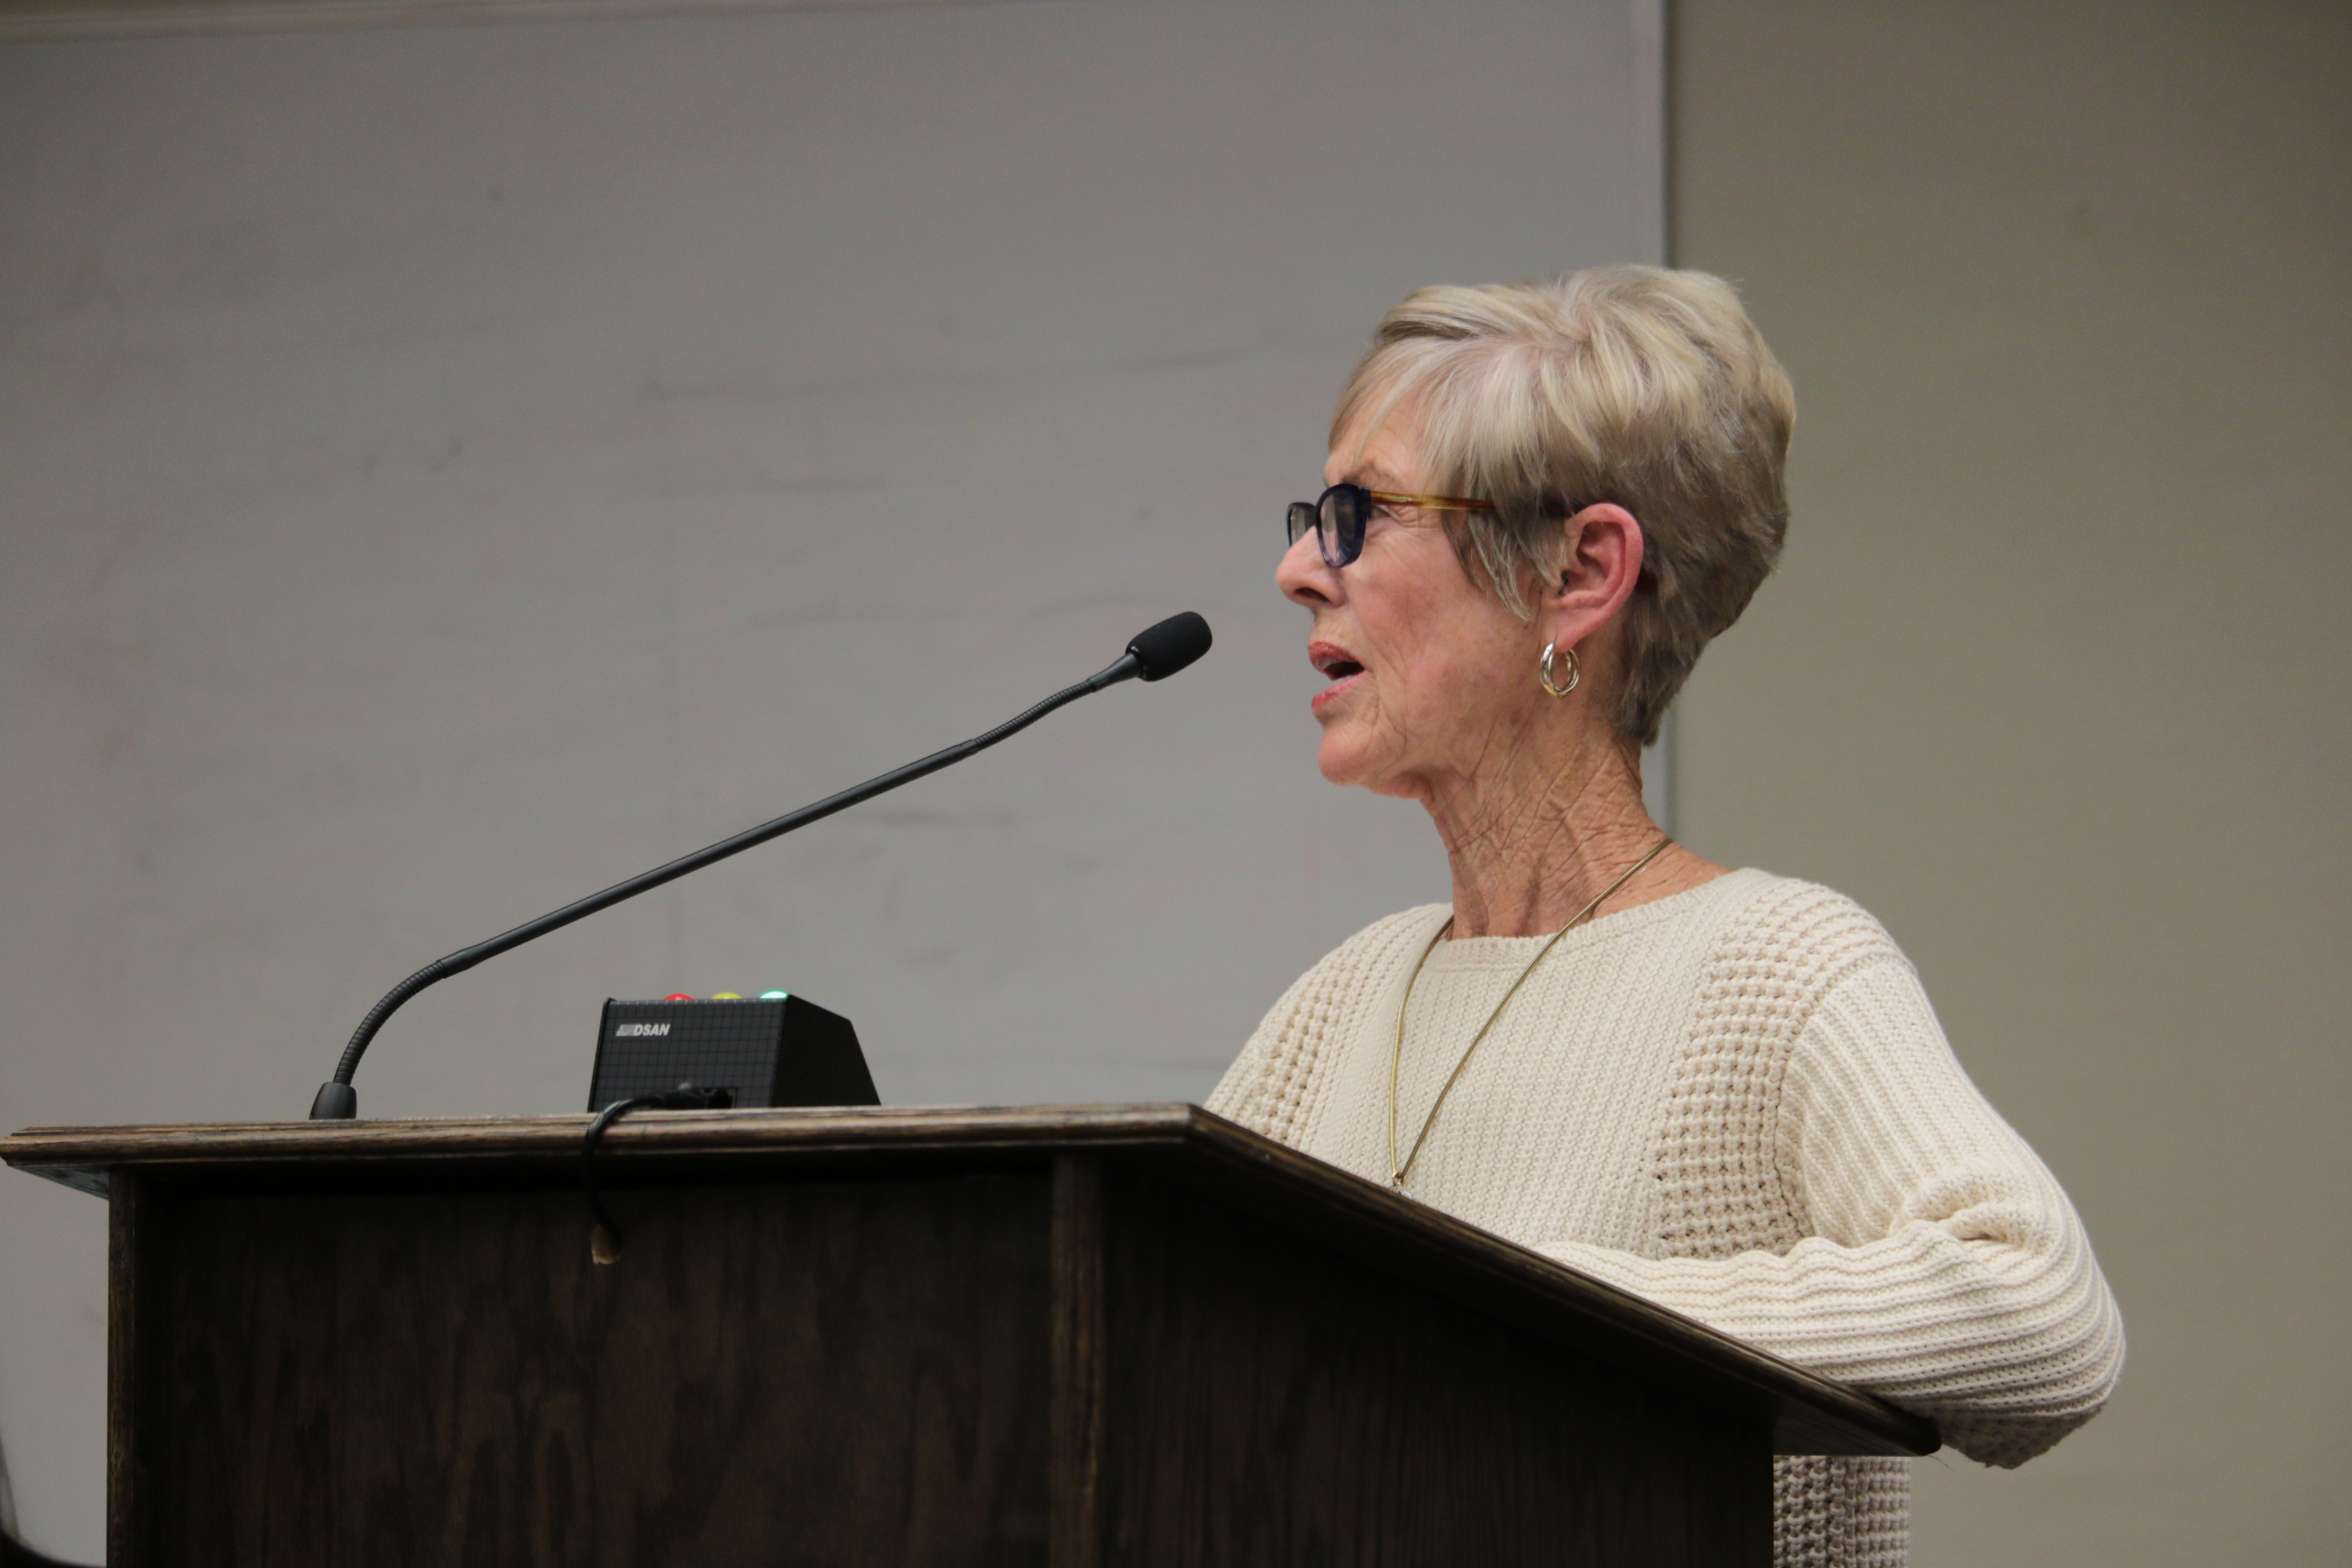 Kay Felice said the development would bring the excitement back to downtown.